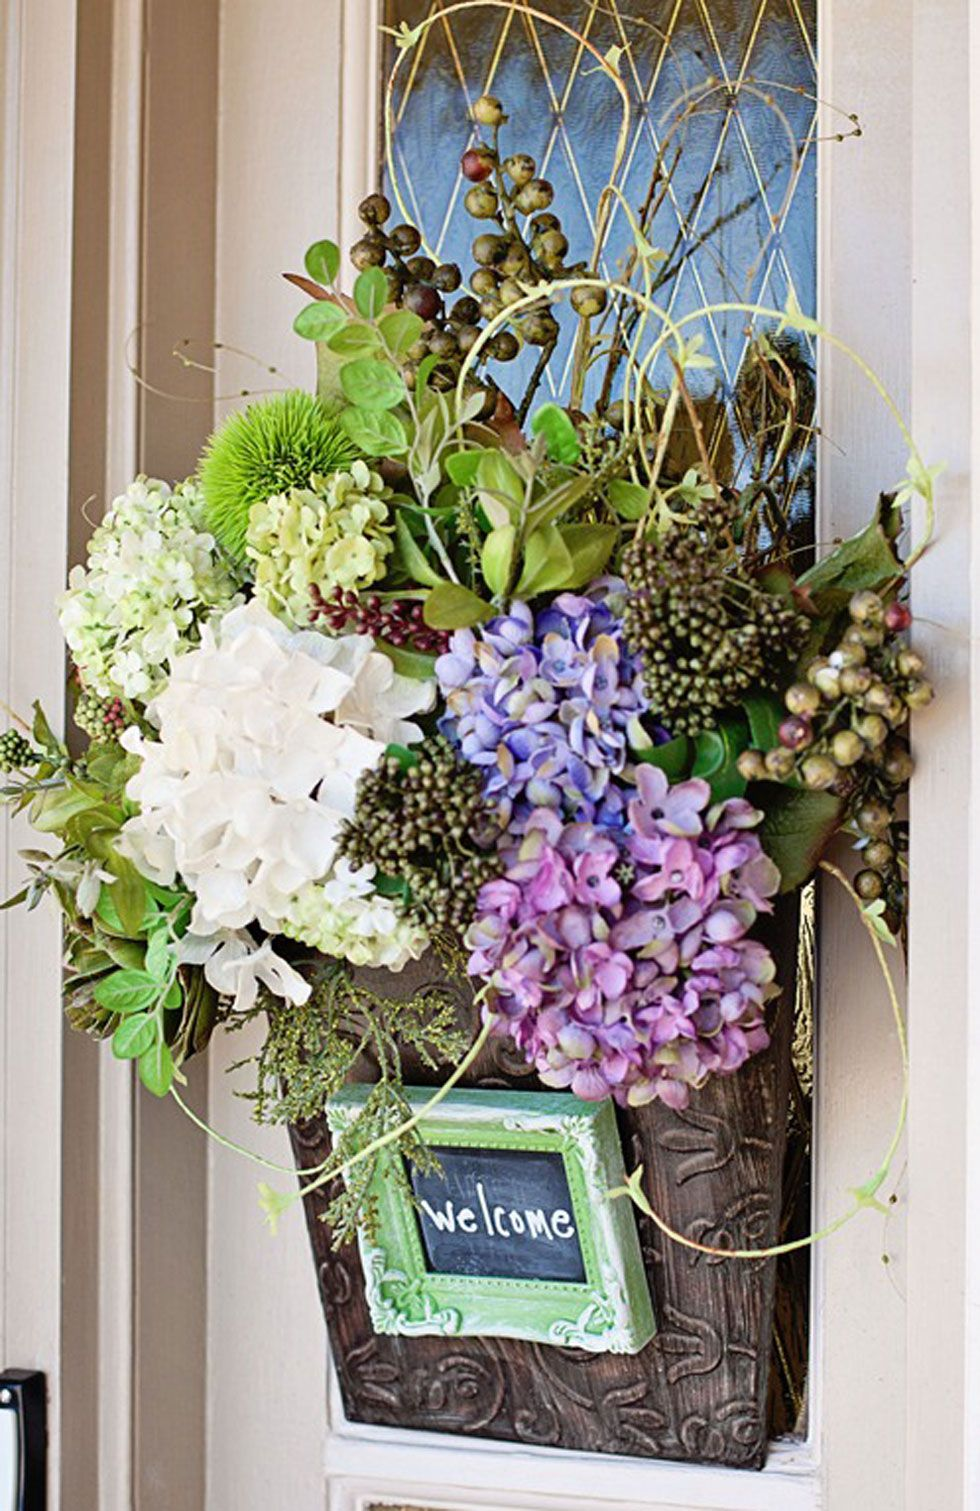 12 Beautiful Decorations To Hang On Your Door That Arenu0027t Wreaths